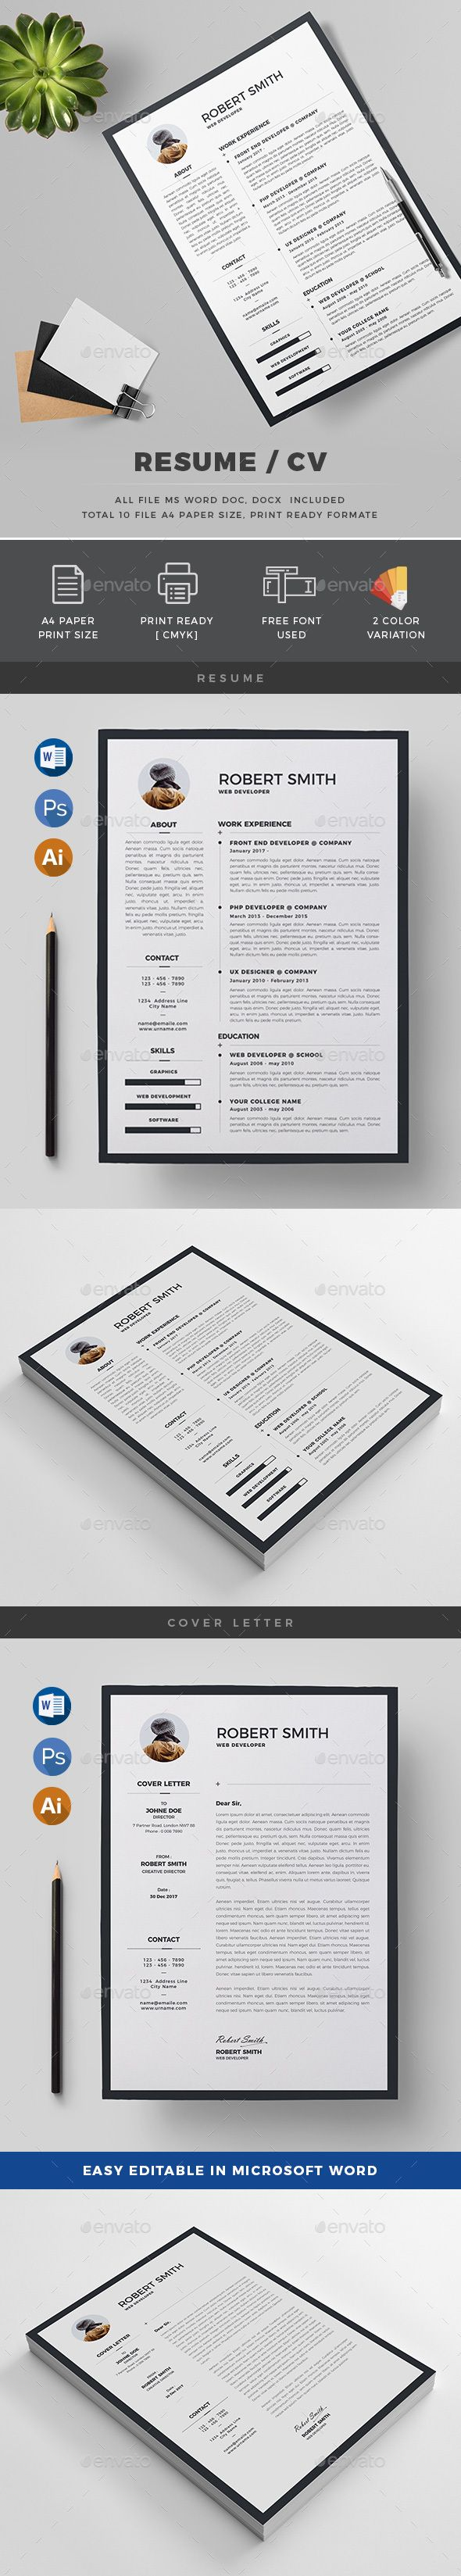 Resume Resumes Stationery Download here https